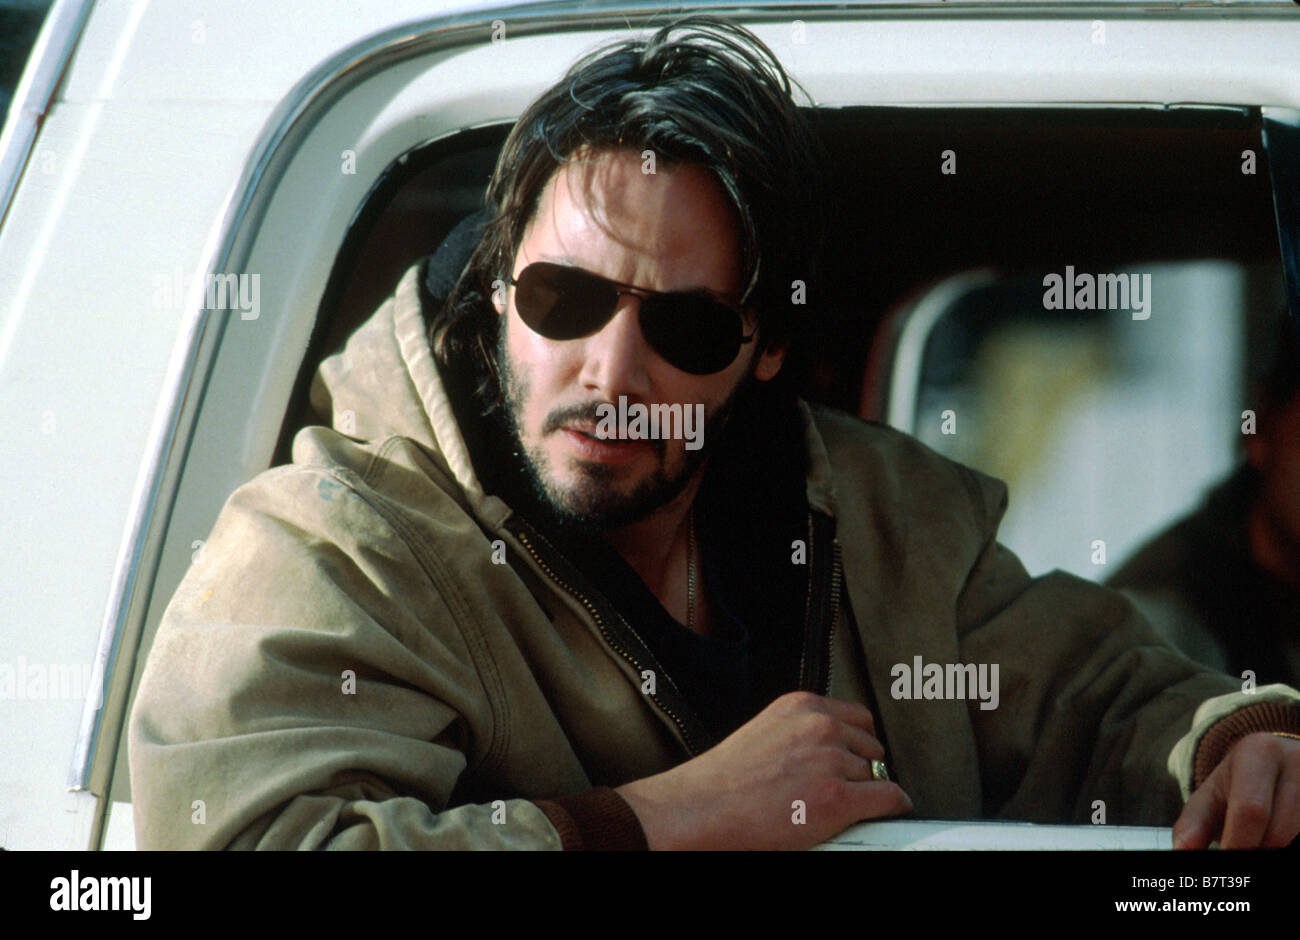 INTUITIONS The Gift Année 2000 usa KEANU REEVES Réalisateur Sam ...